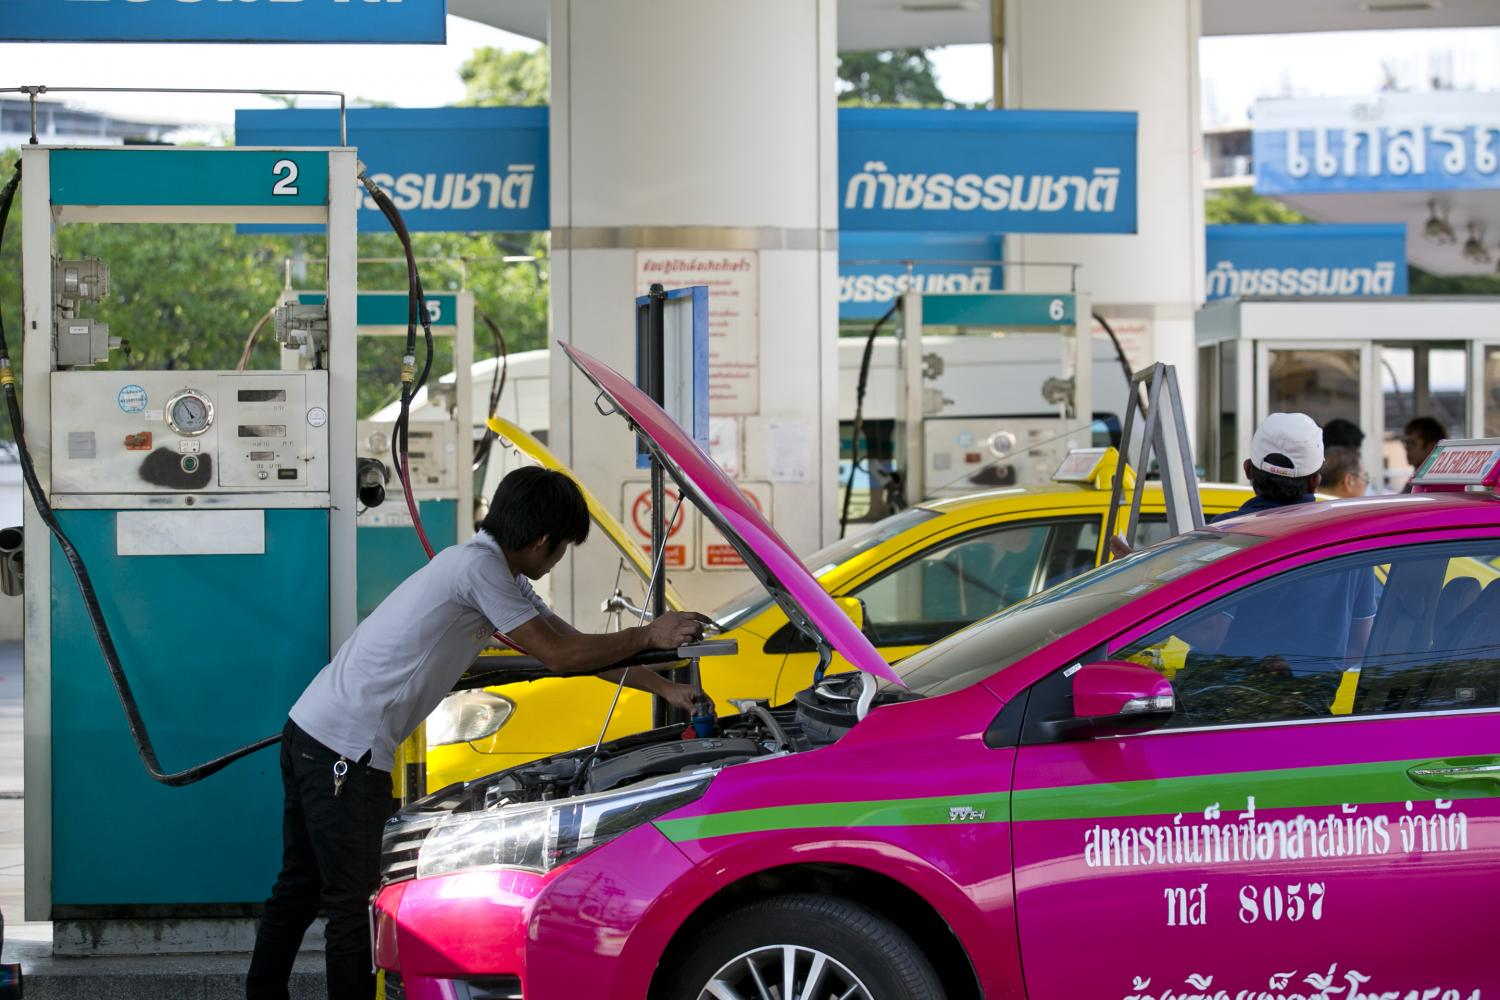 Operators call for cheaper NGV to compete with diesel